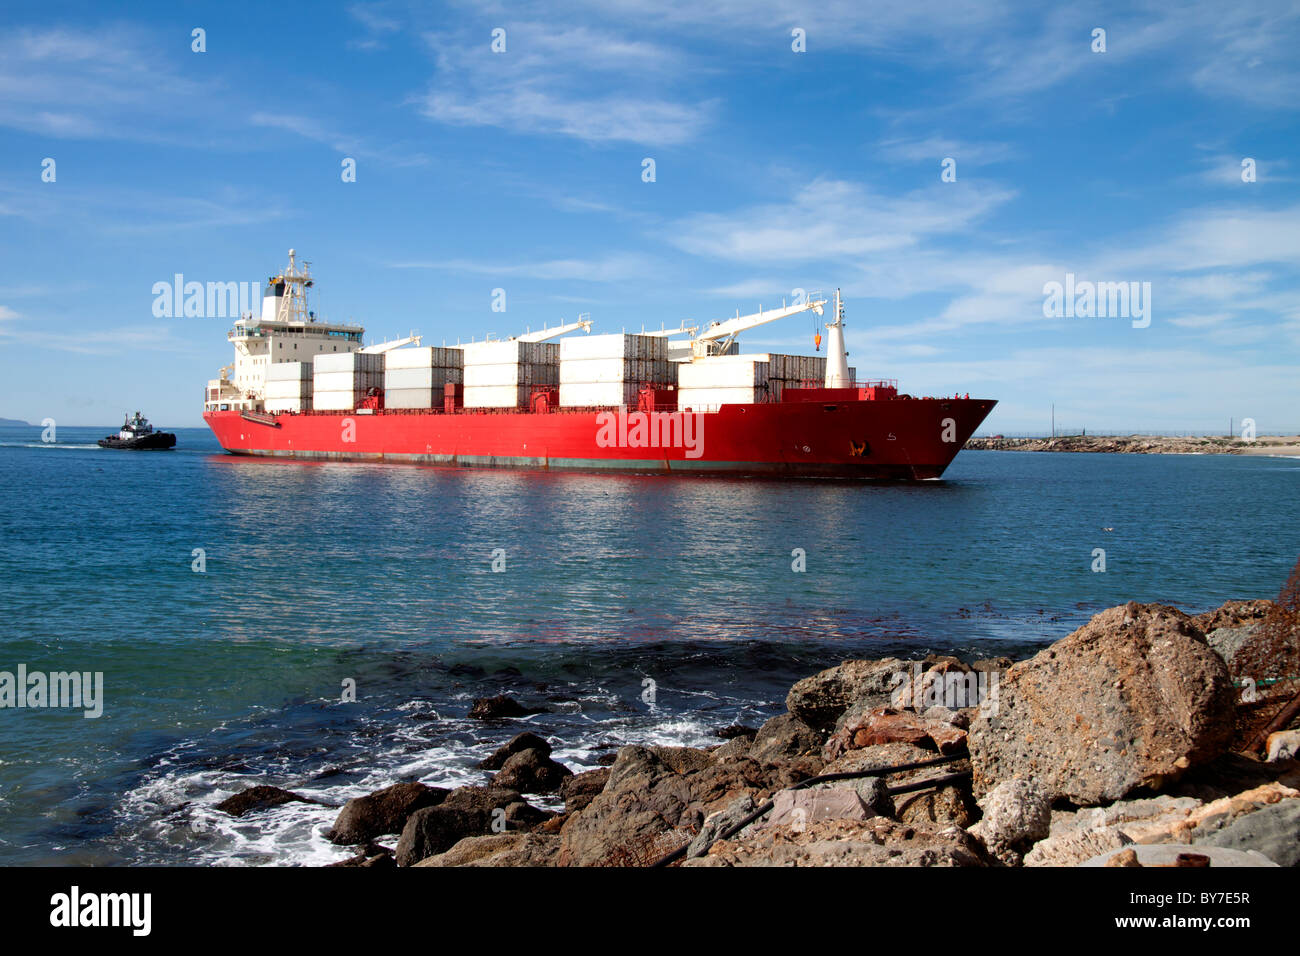 Cargo ship being guided by tugboat through the harbor - Stock Image